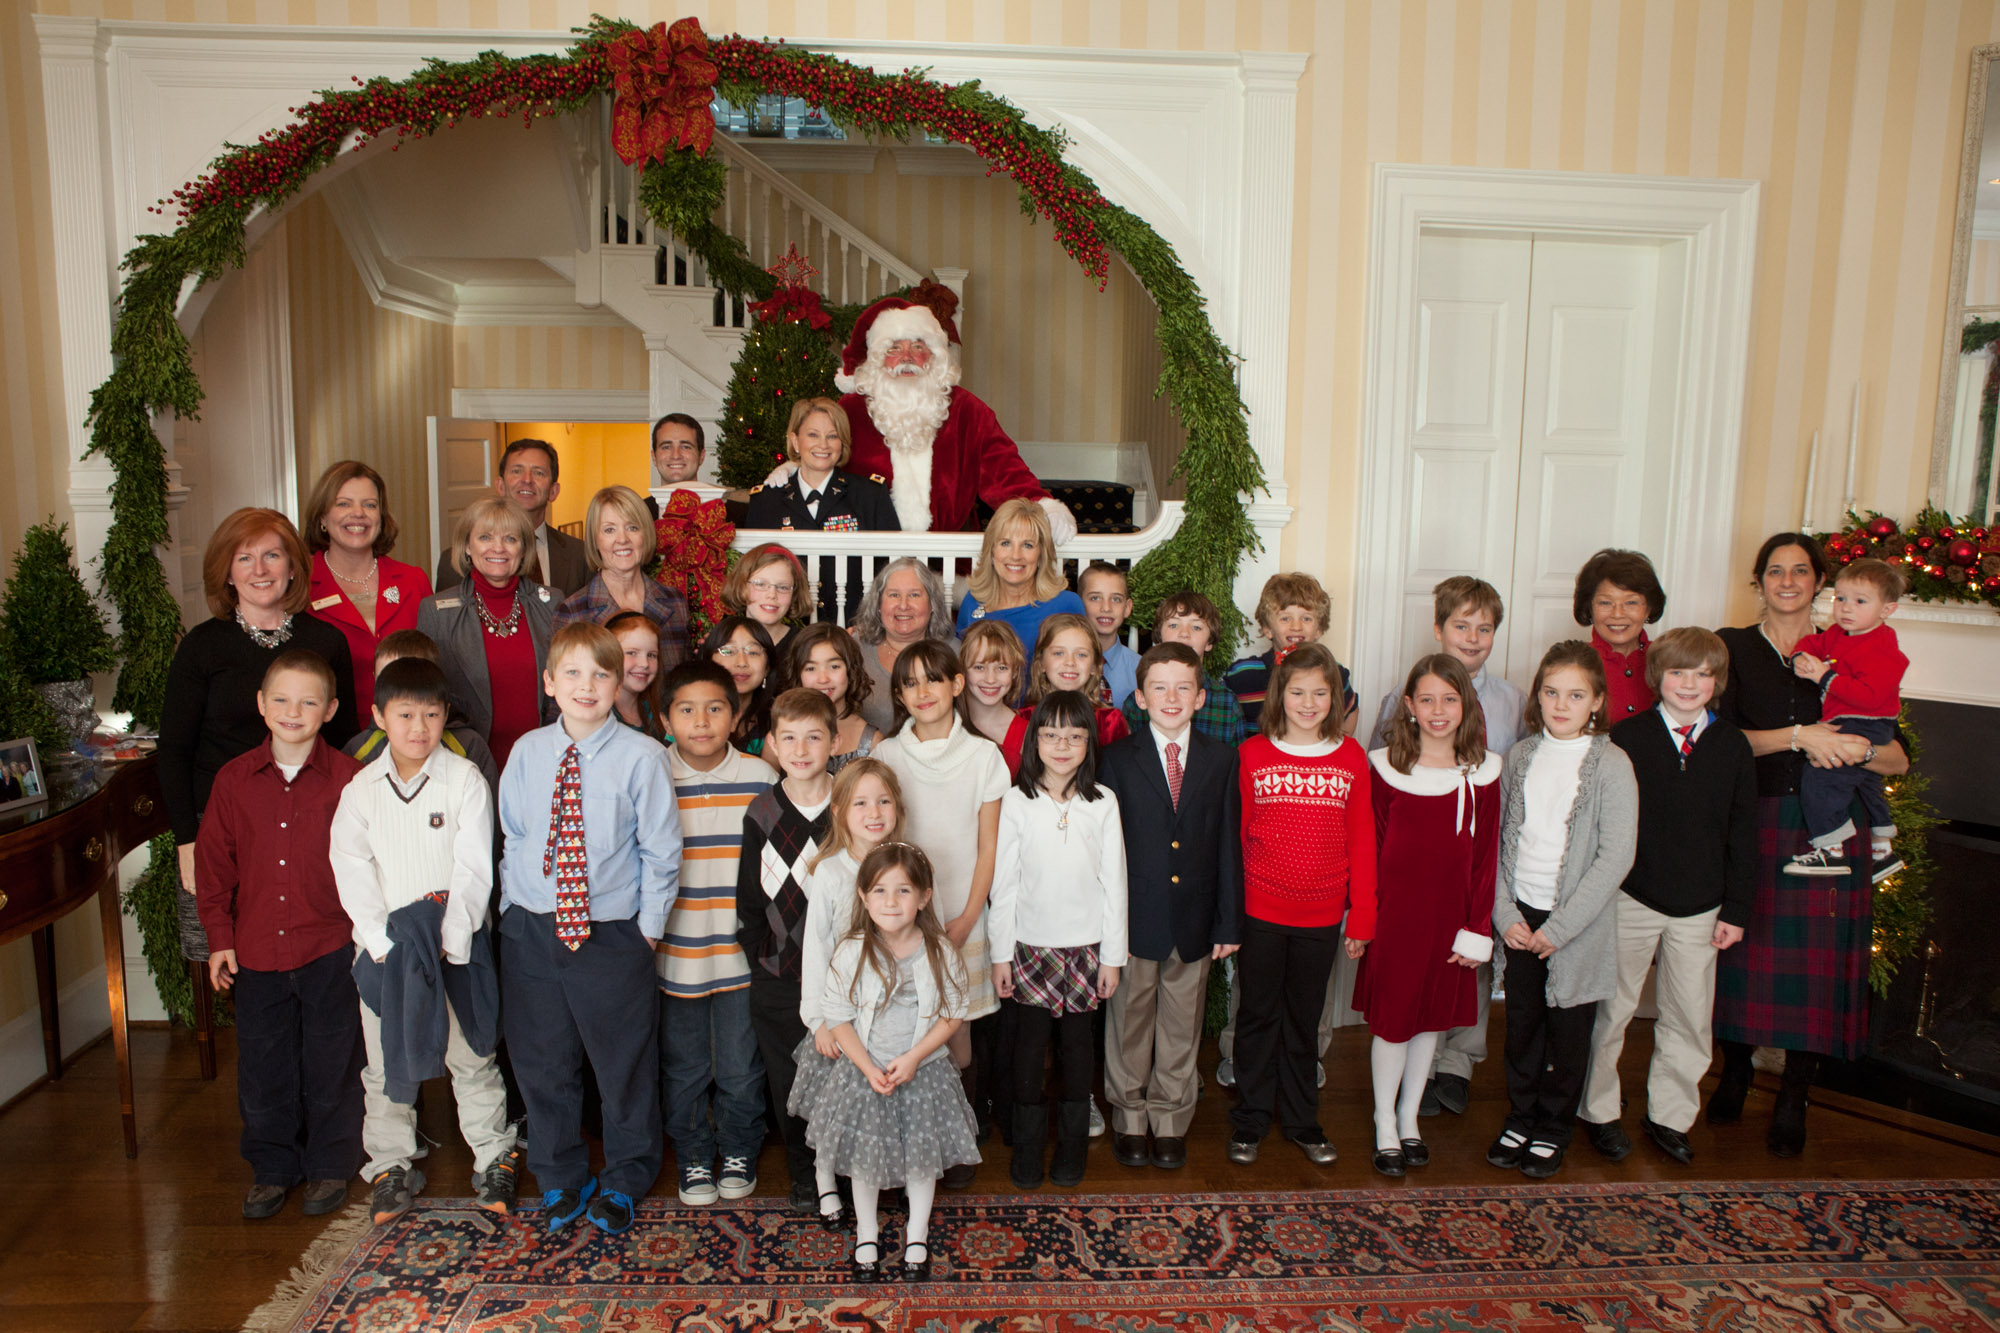 Group Photo at Dr Biden's Holiday Party for White Oaks Elementary School